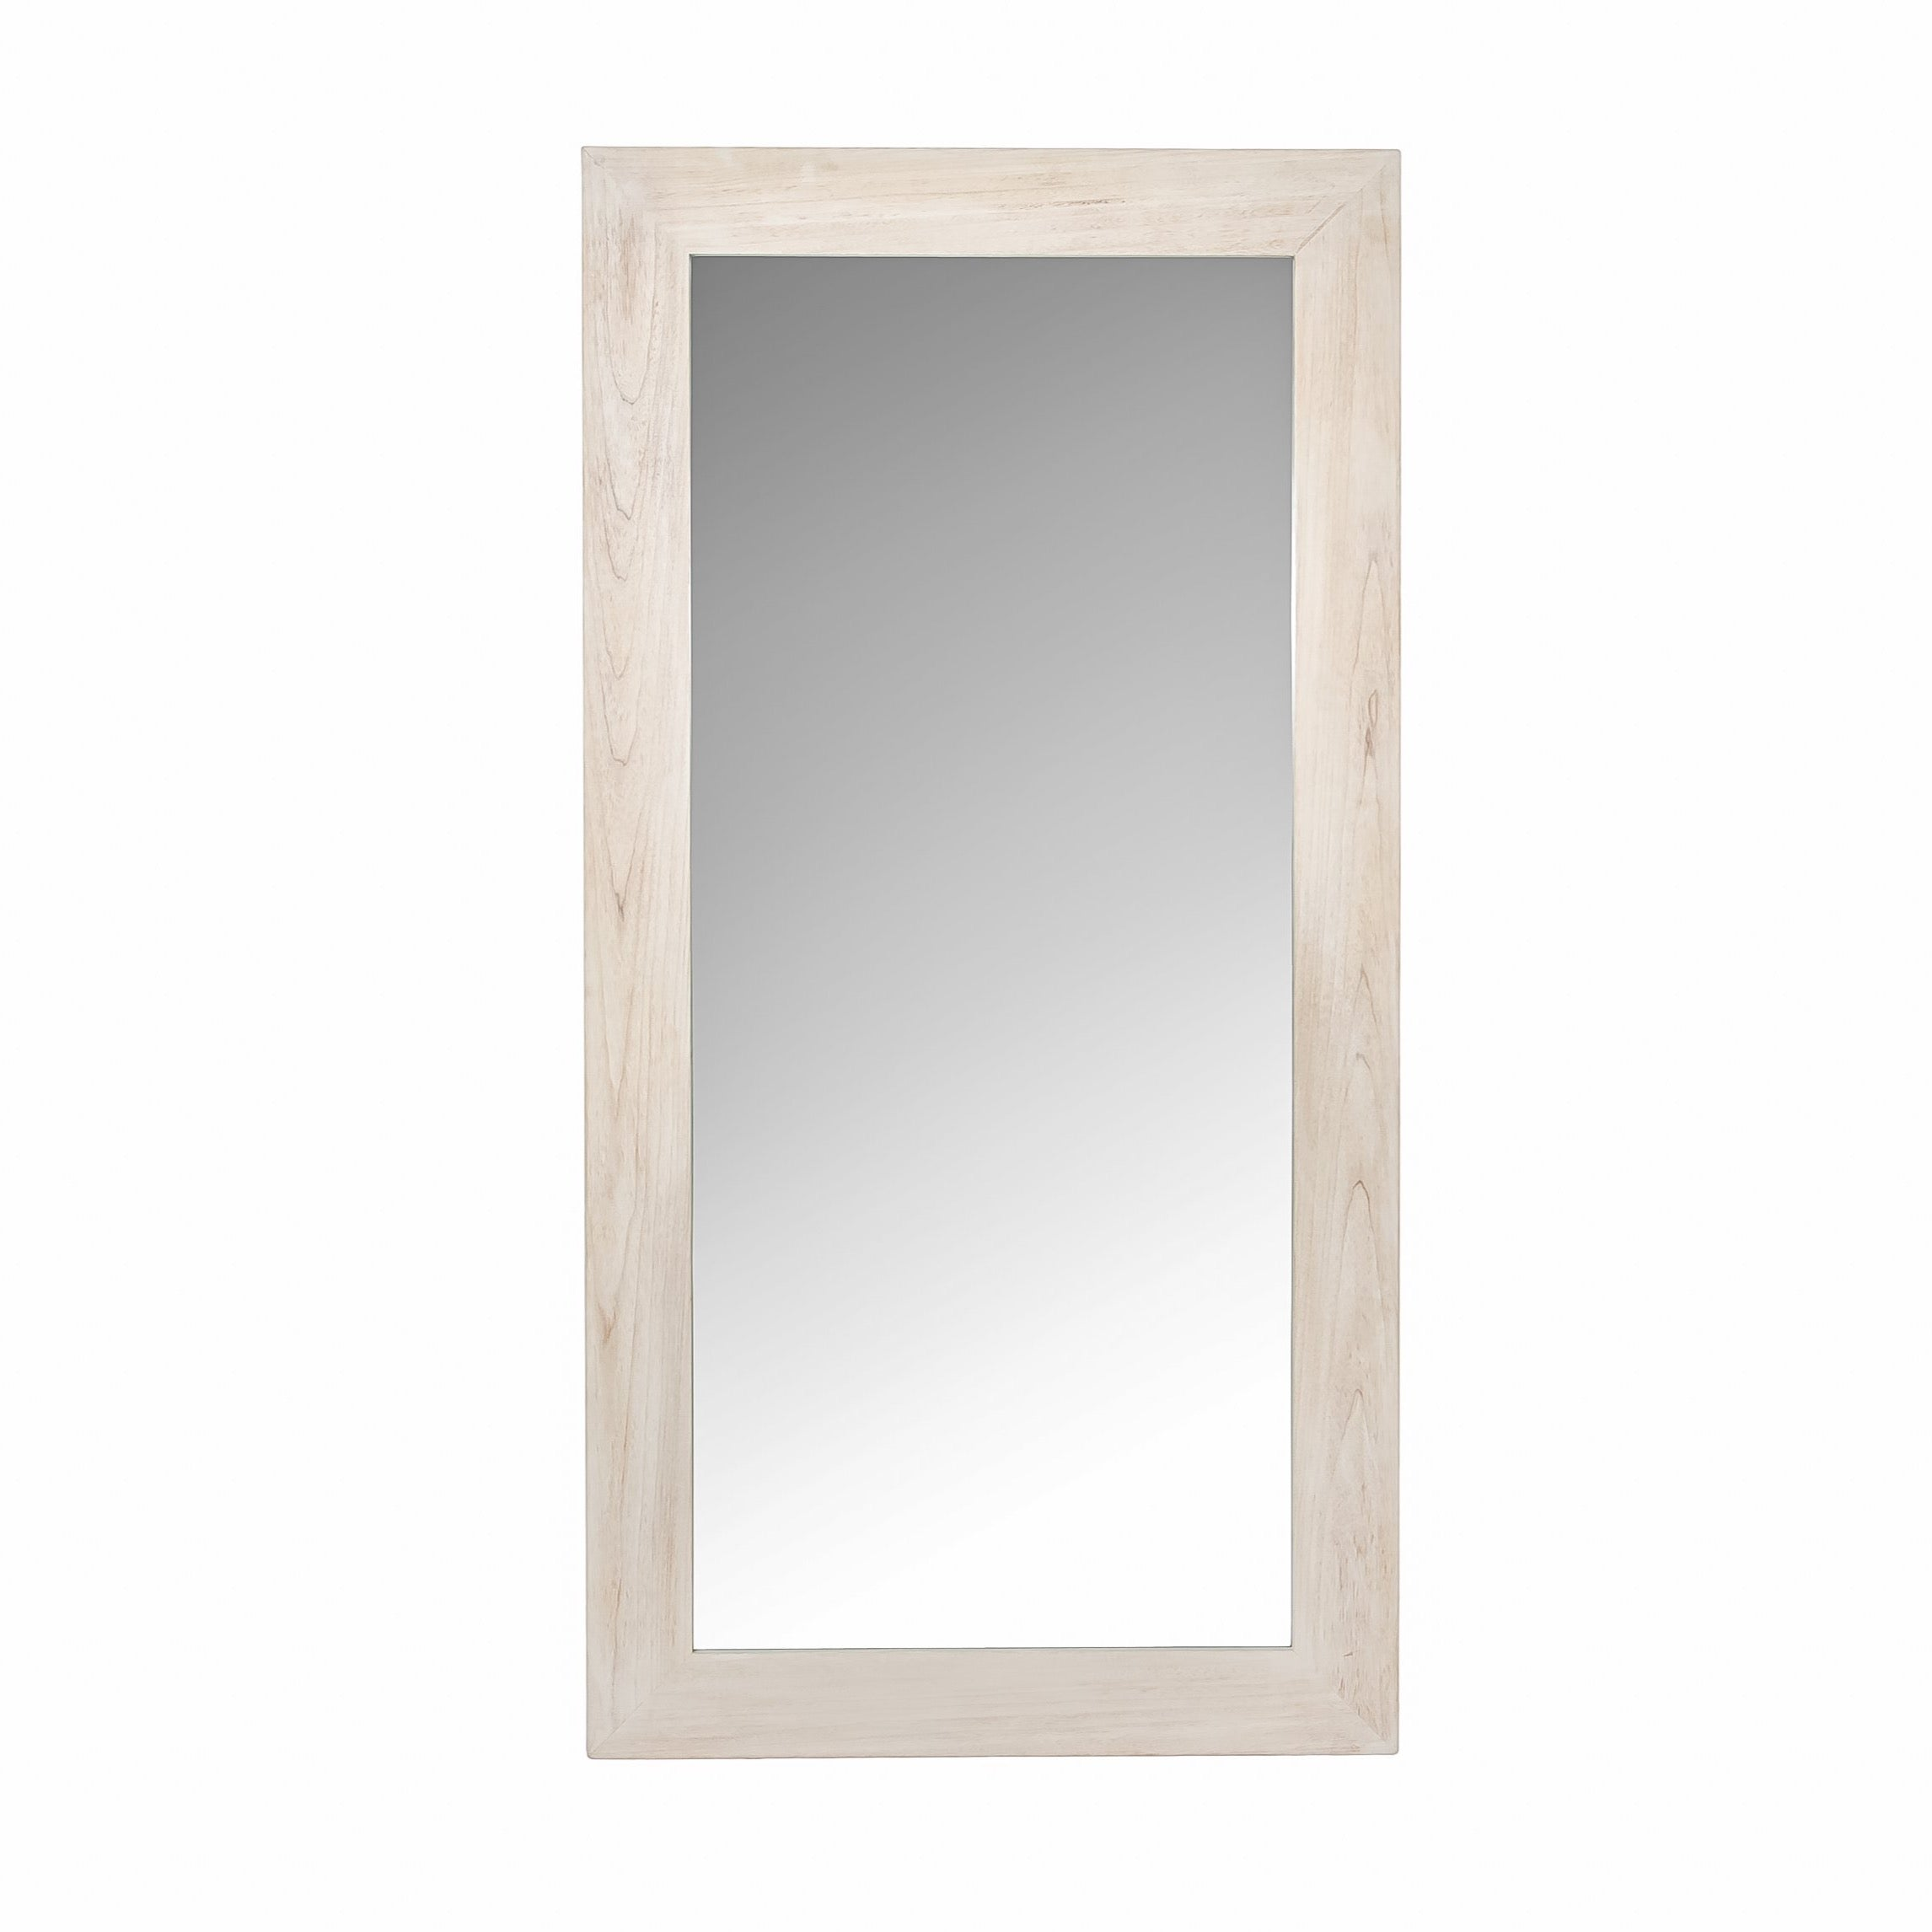 Bohemian Floor Bristol Mirror - Light Oak